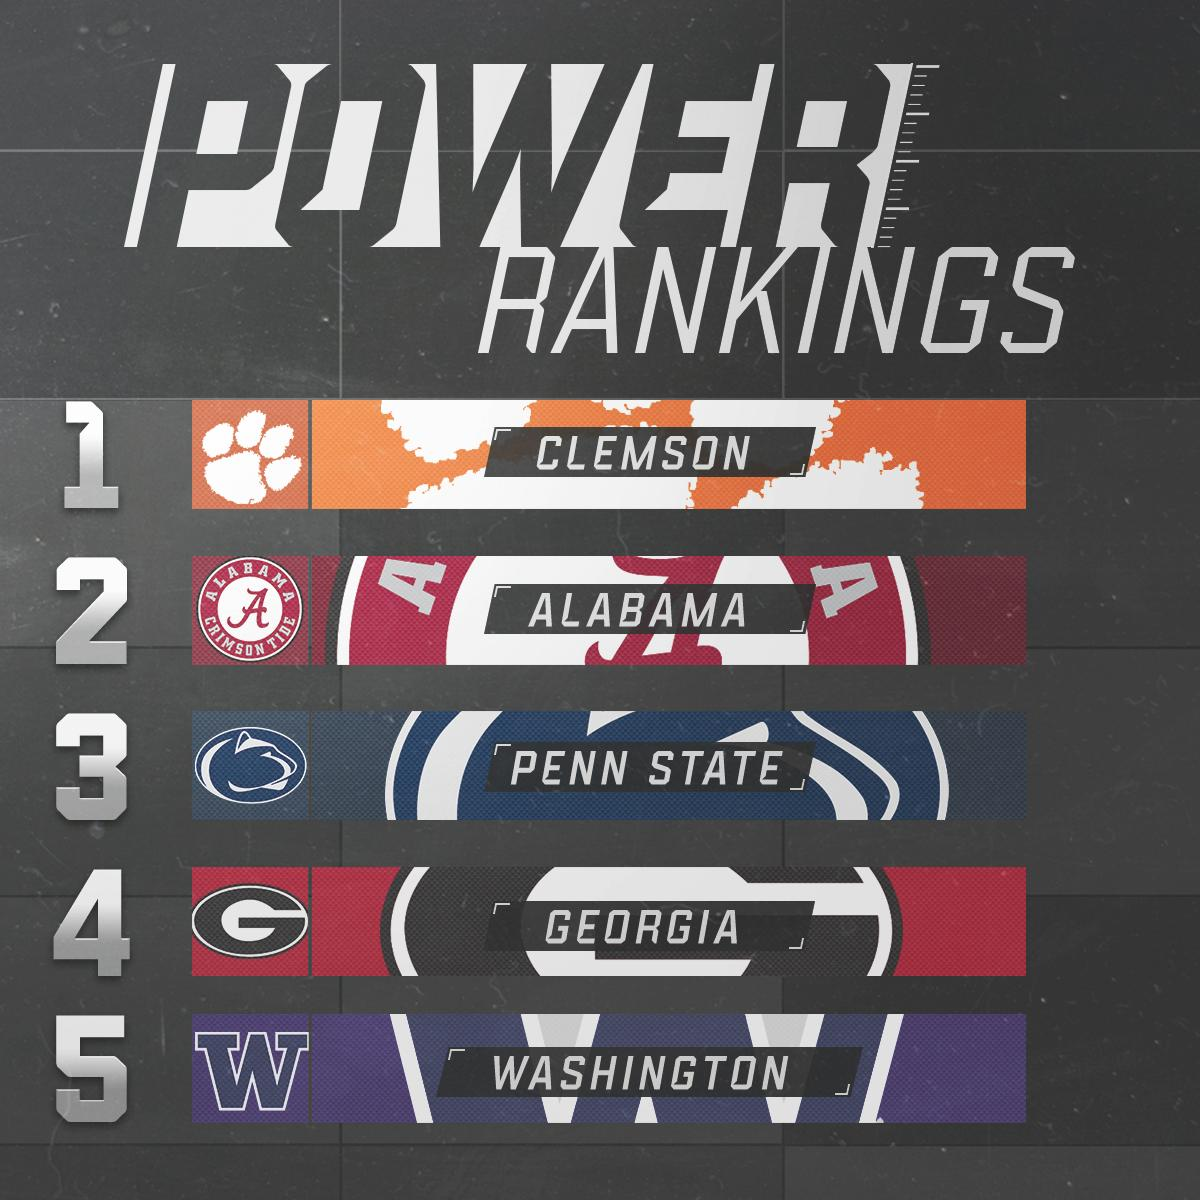 We've got a shake-up in the top 5.  MORE: https://t.co/Q4kWJcvObC https://t.co/KzsDGwFhXa